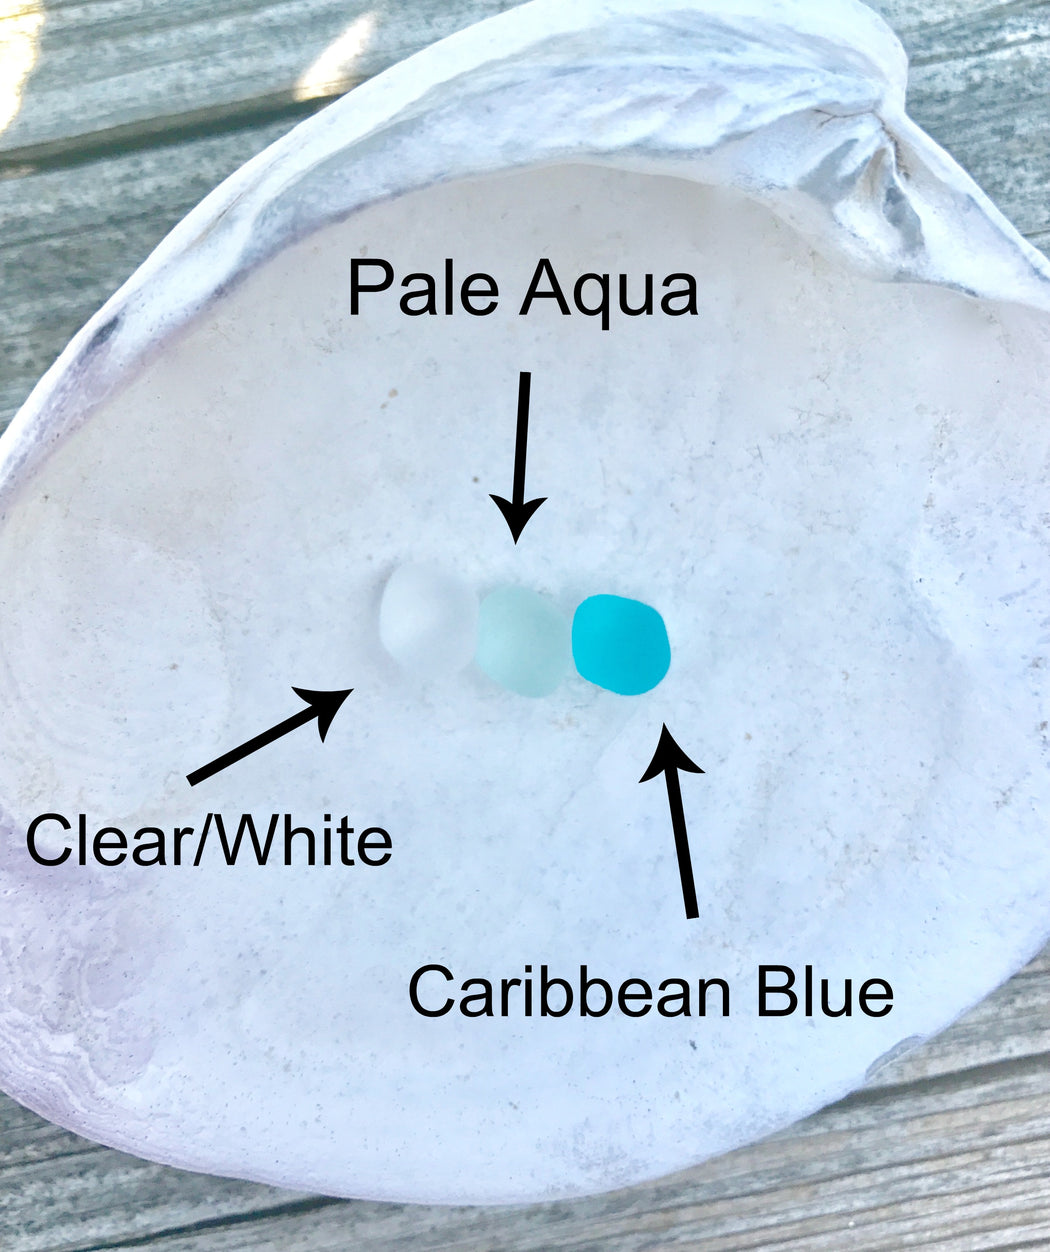 pale aqua clear white and Caribbean blue sea glass options